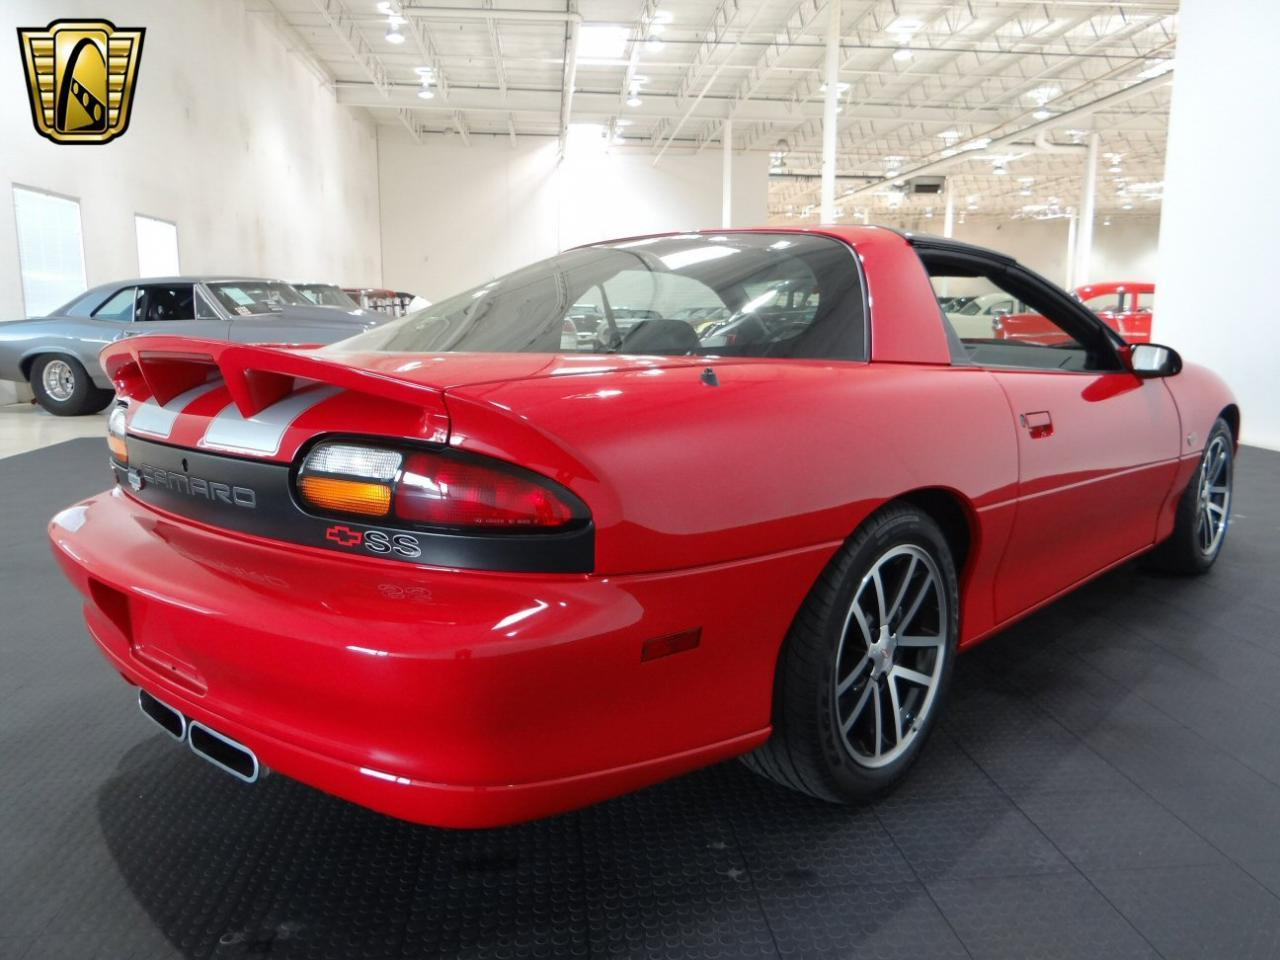 Large Picture of '02 Chevrolet Camaro located in Illinois - L44H